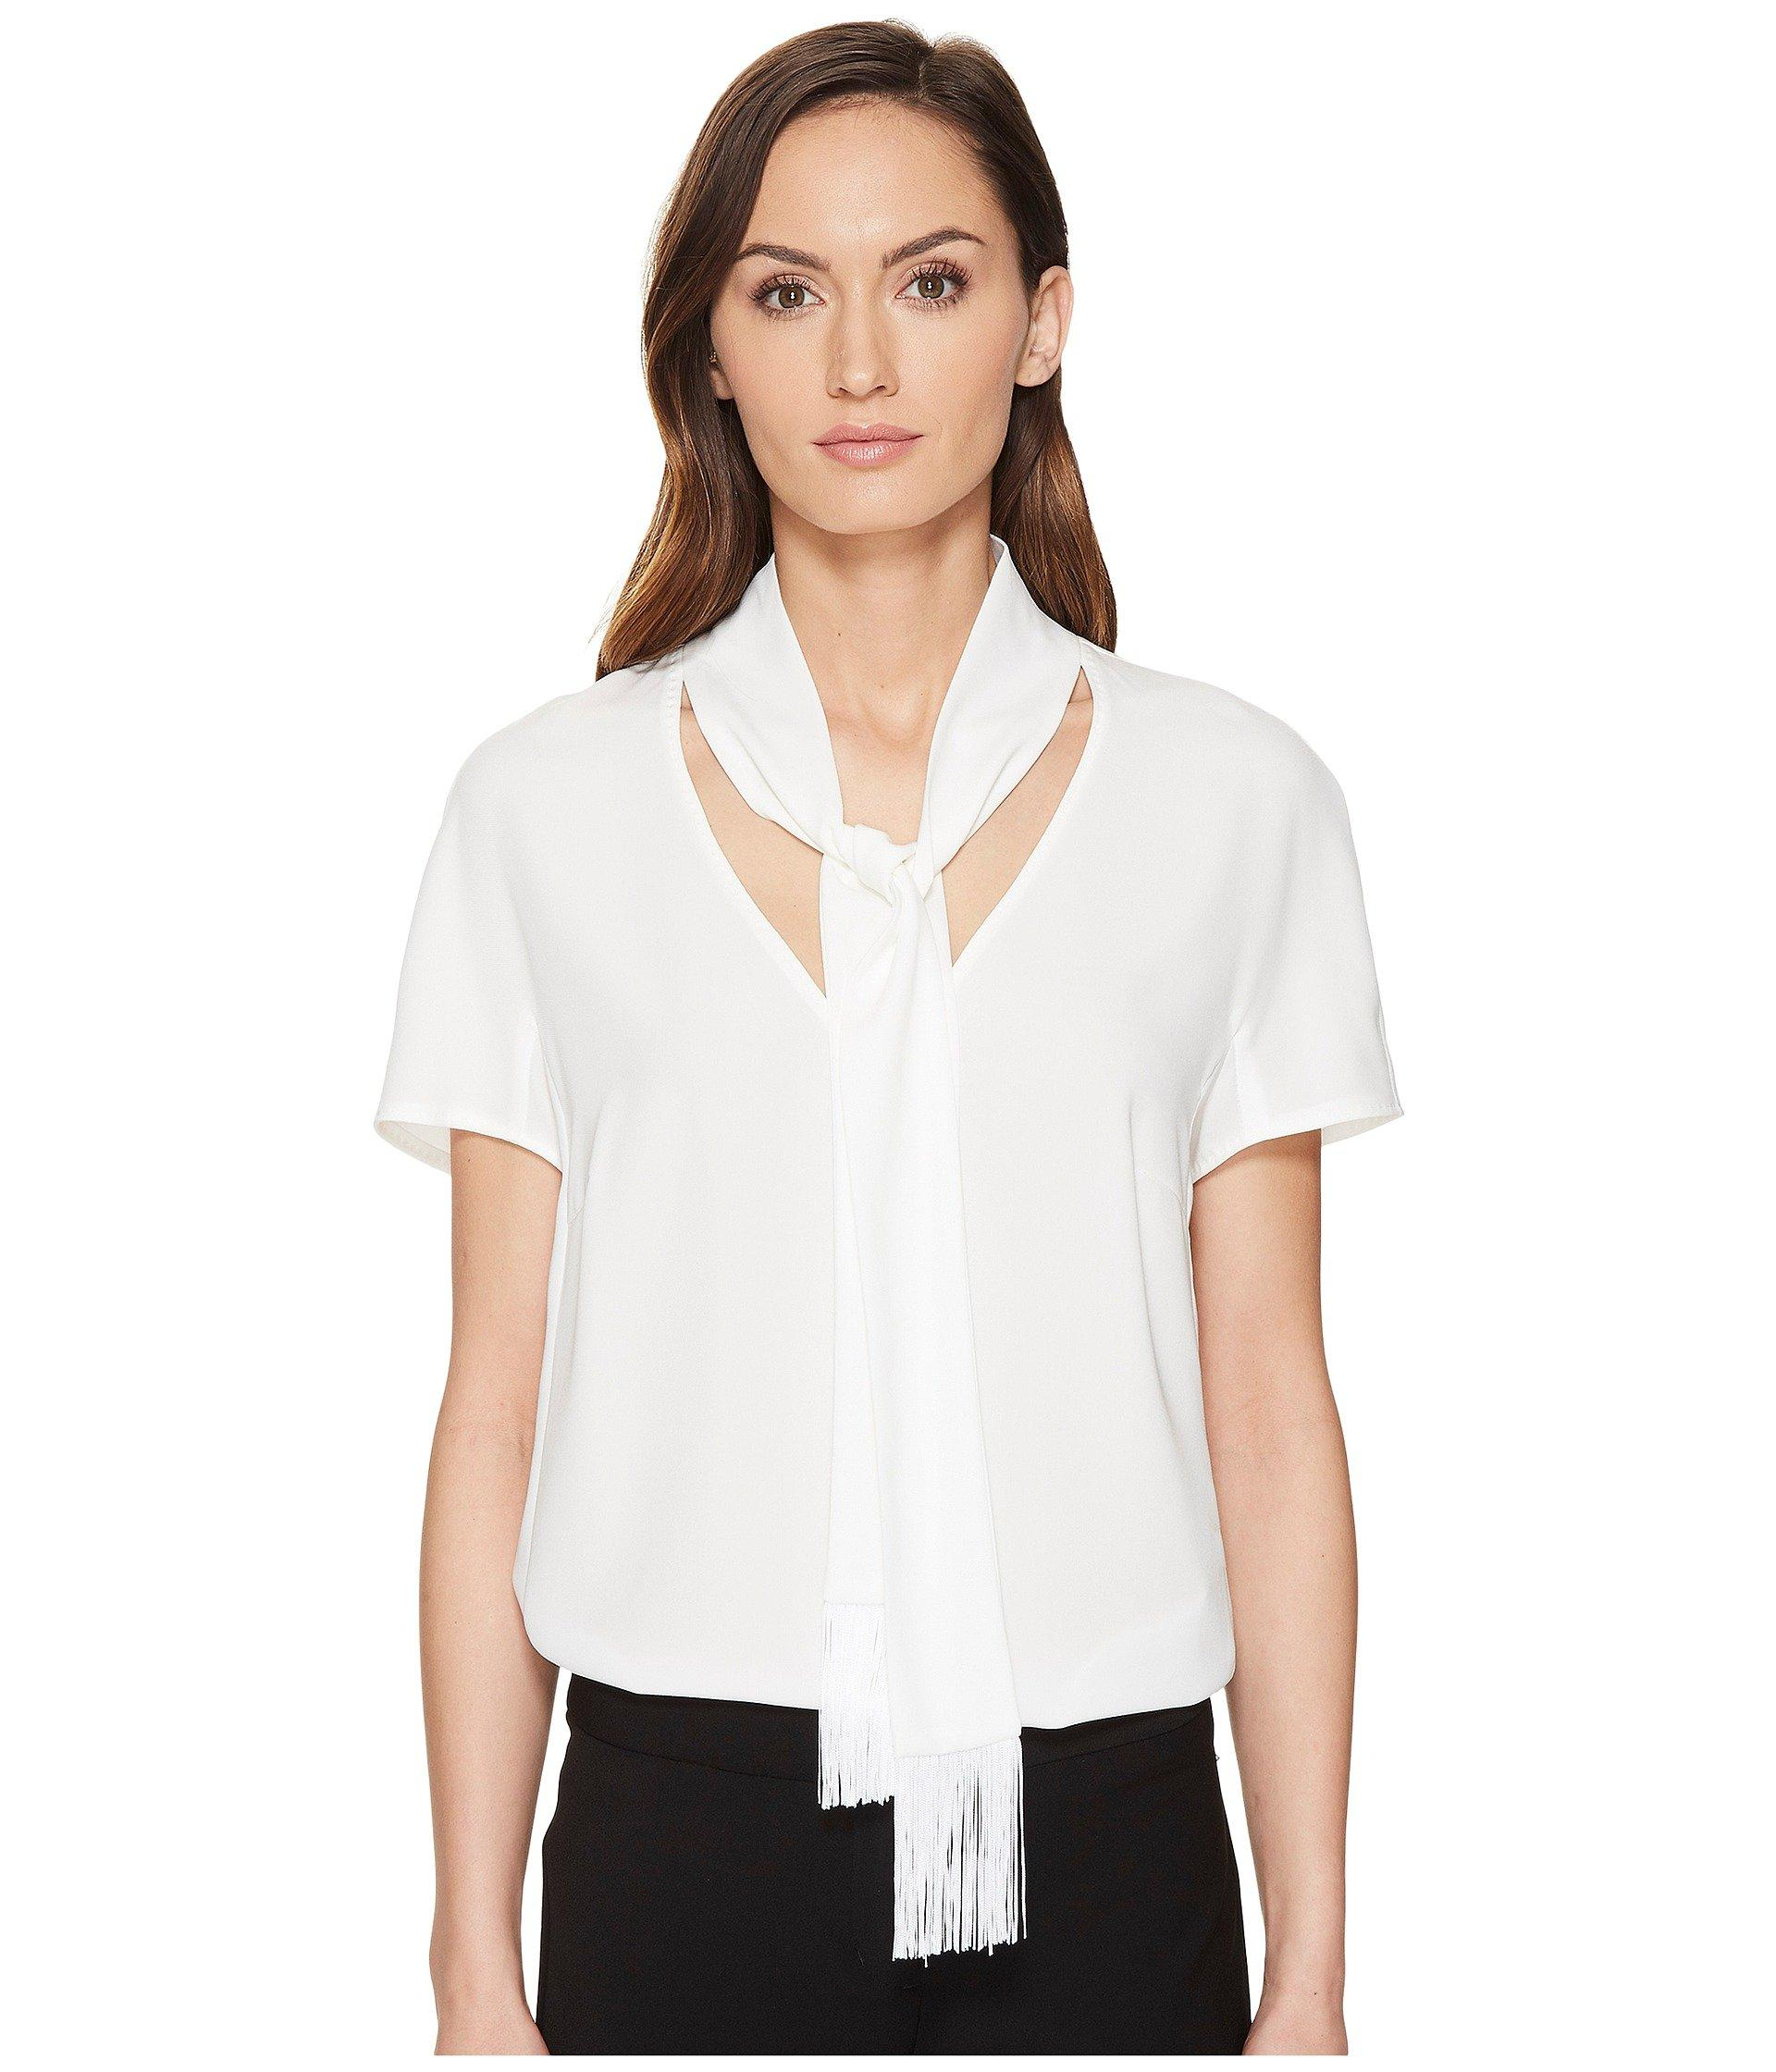 Escada Naxanefa Short Sleeve Blouse In Off-White